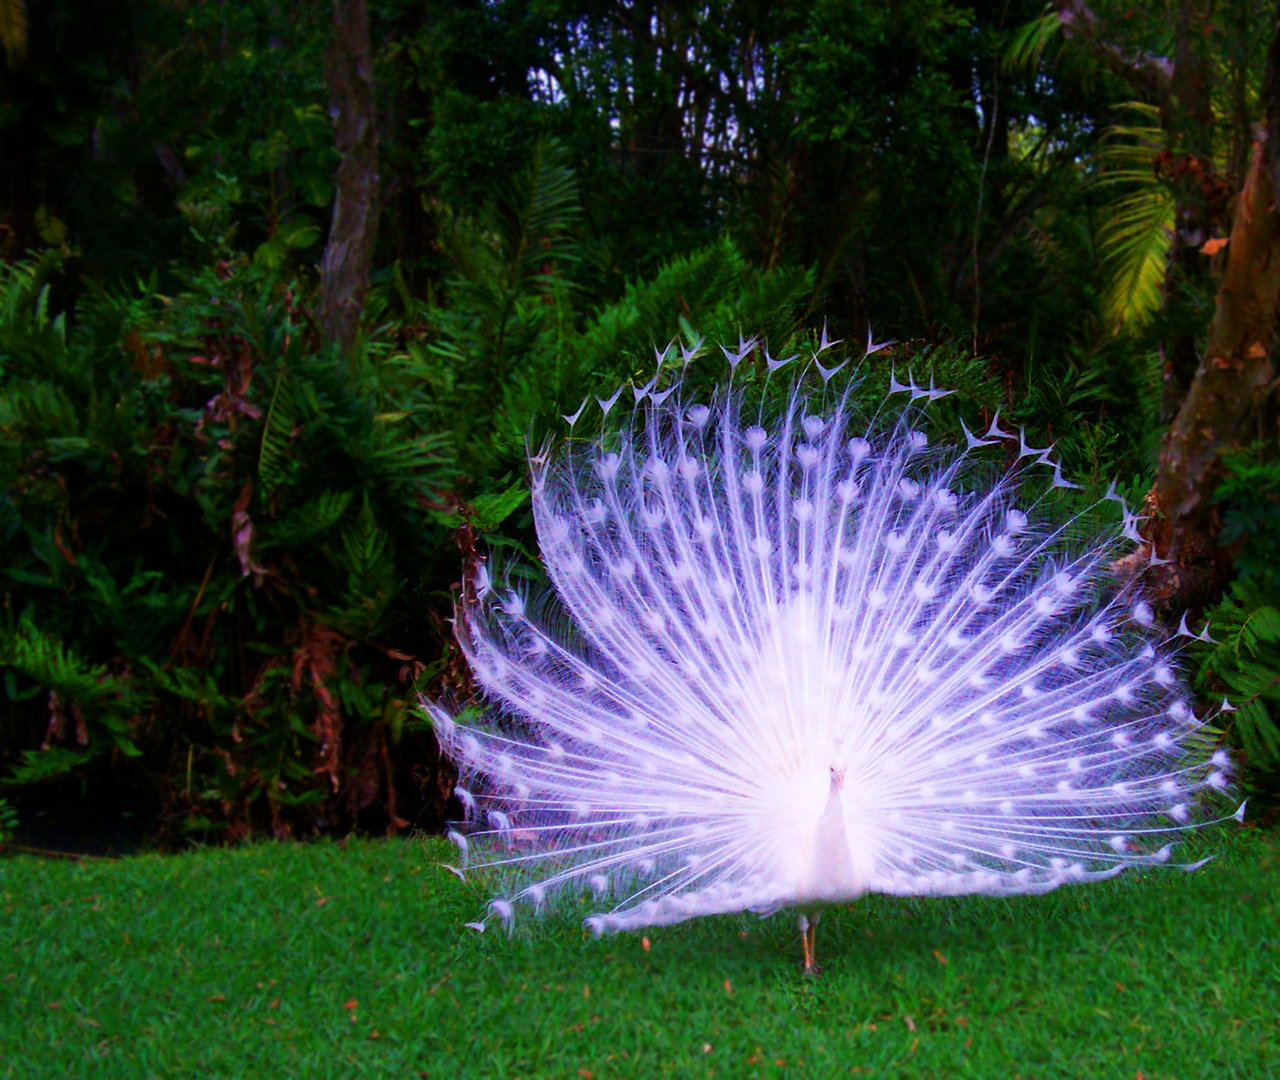 Albino-Peacock-Carries-a-beautiful-opaque-lavender-hue-to-its-feathers-wallpaper-wp3402246